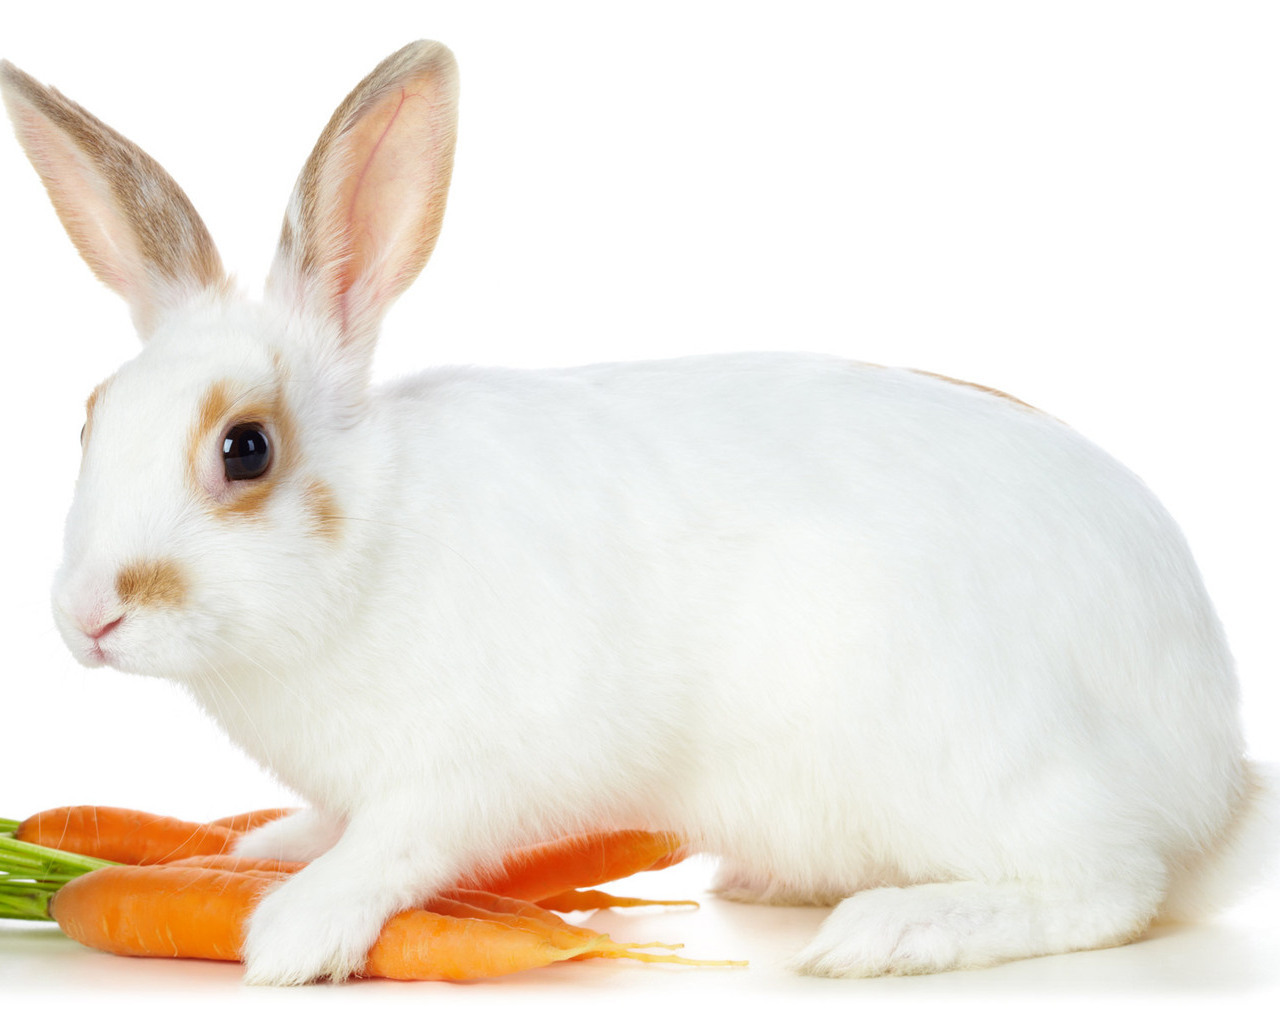 Cute White Rabbits Wallpapers 10